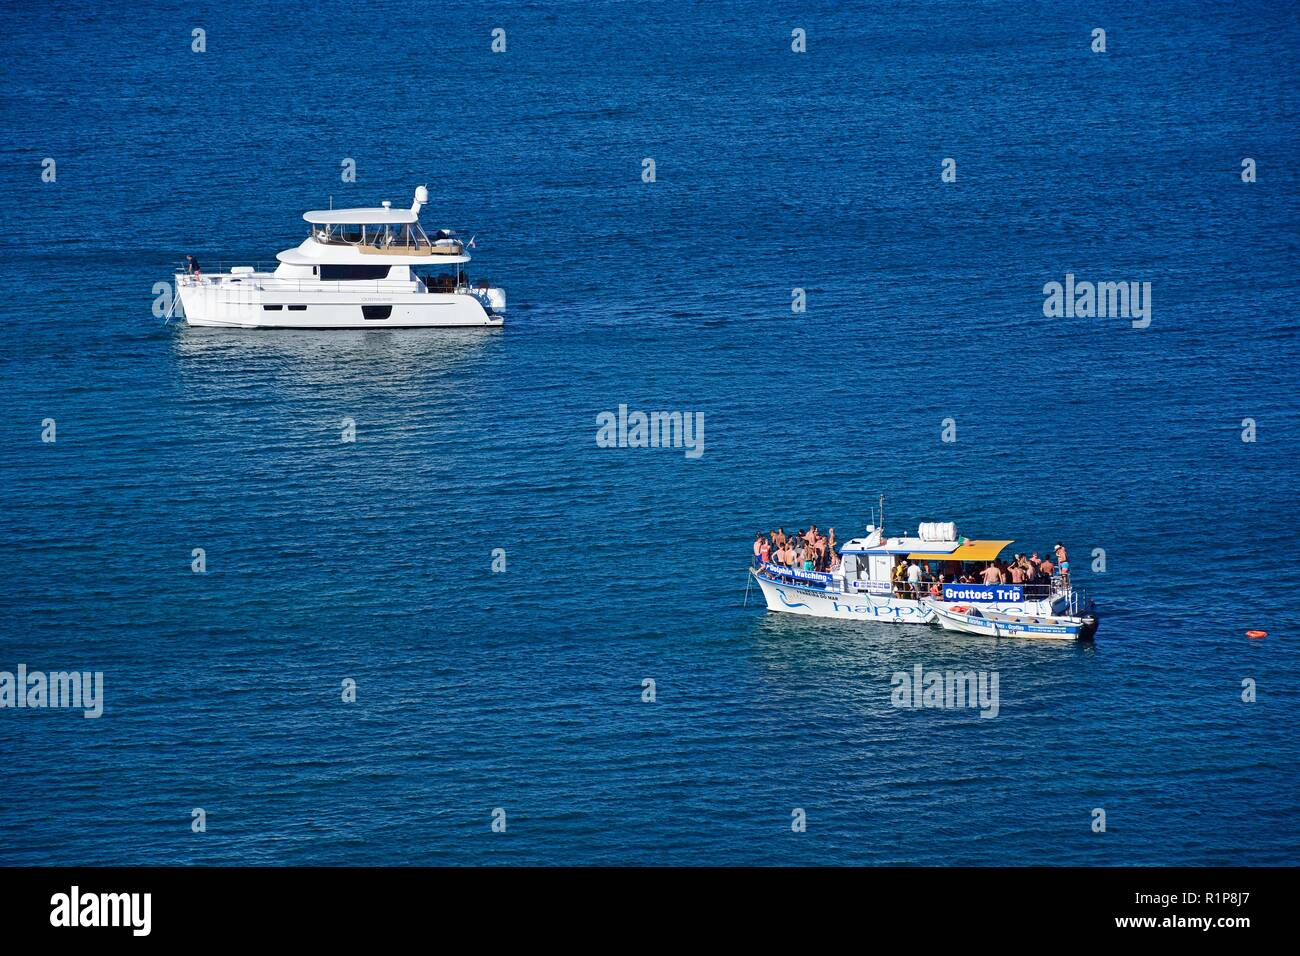 Elevated view tourists on boats in the bay, Ponta da Piedade, Lagos, Algarve, Portugal, Europe. - Stock Image